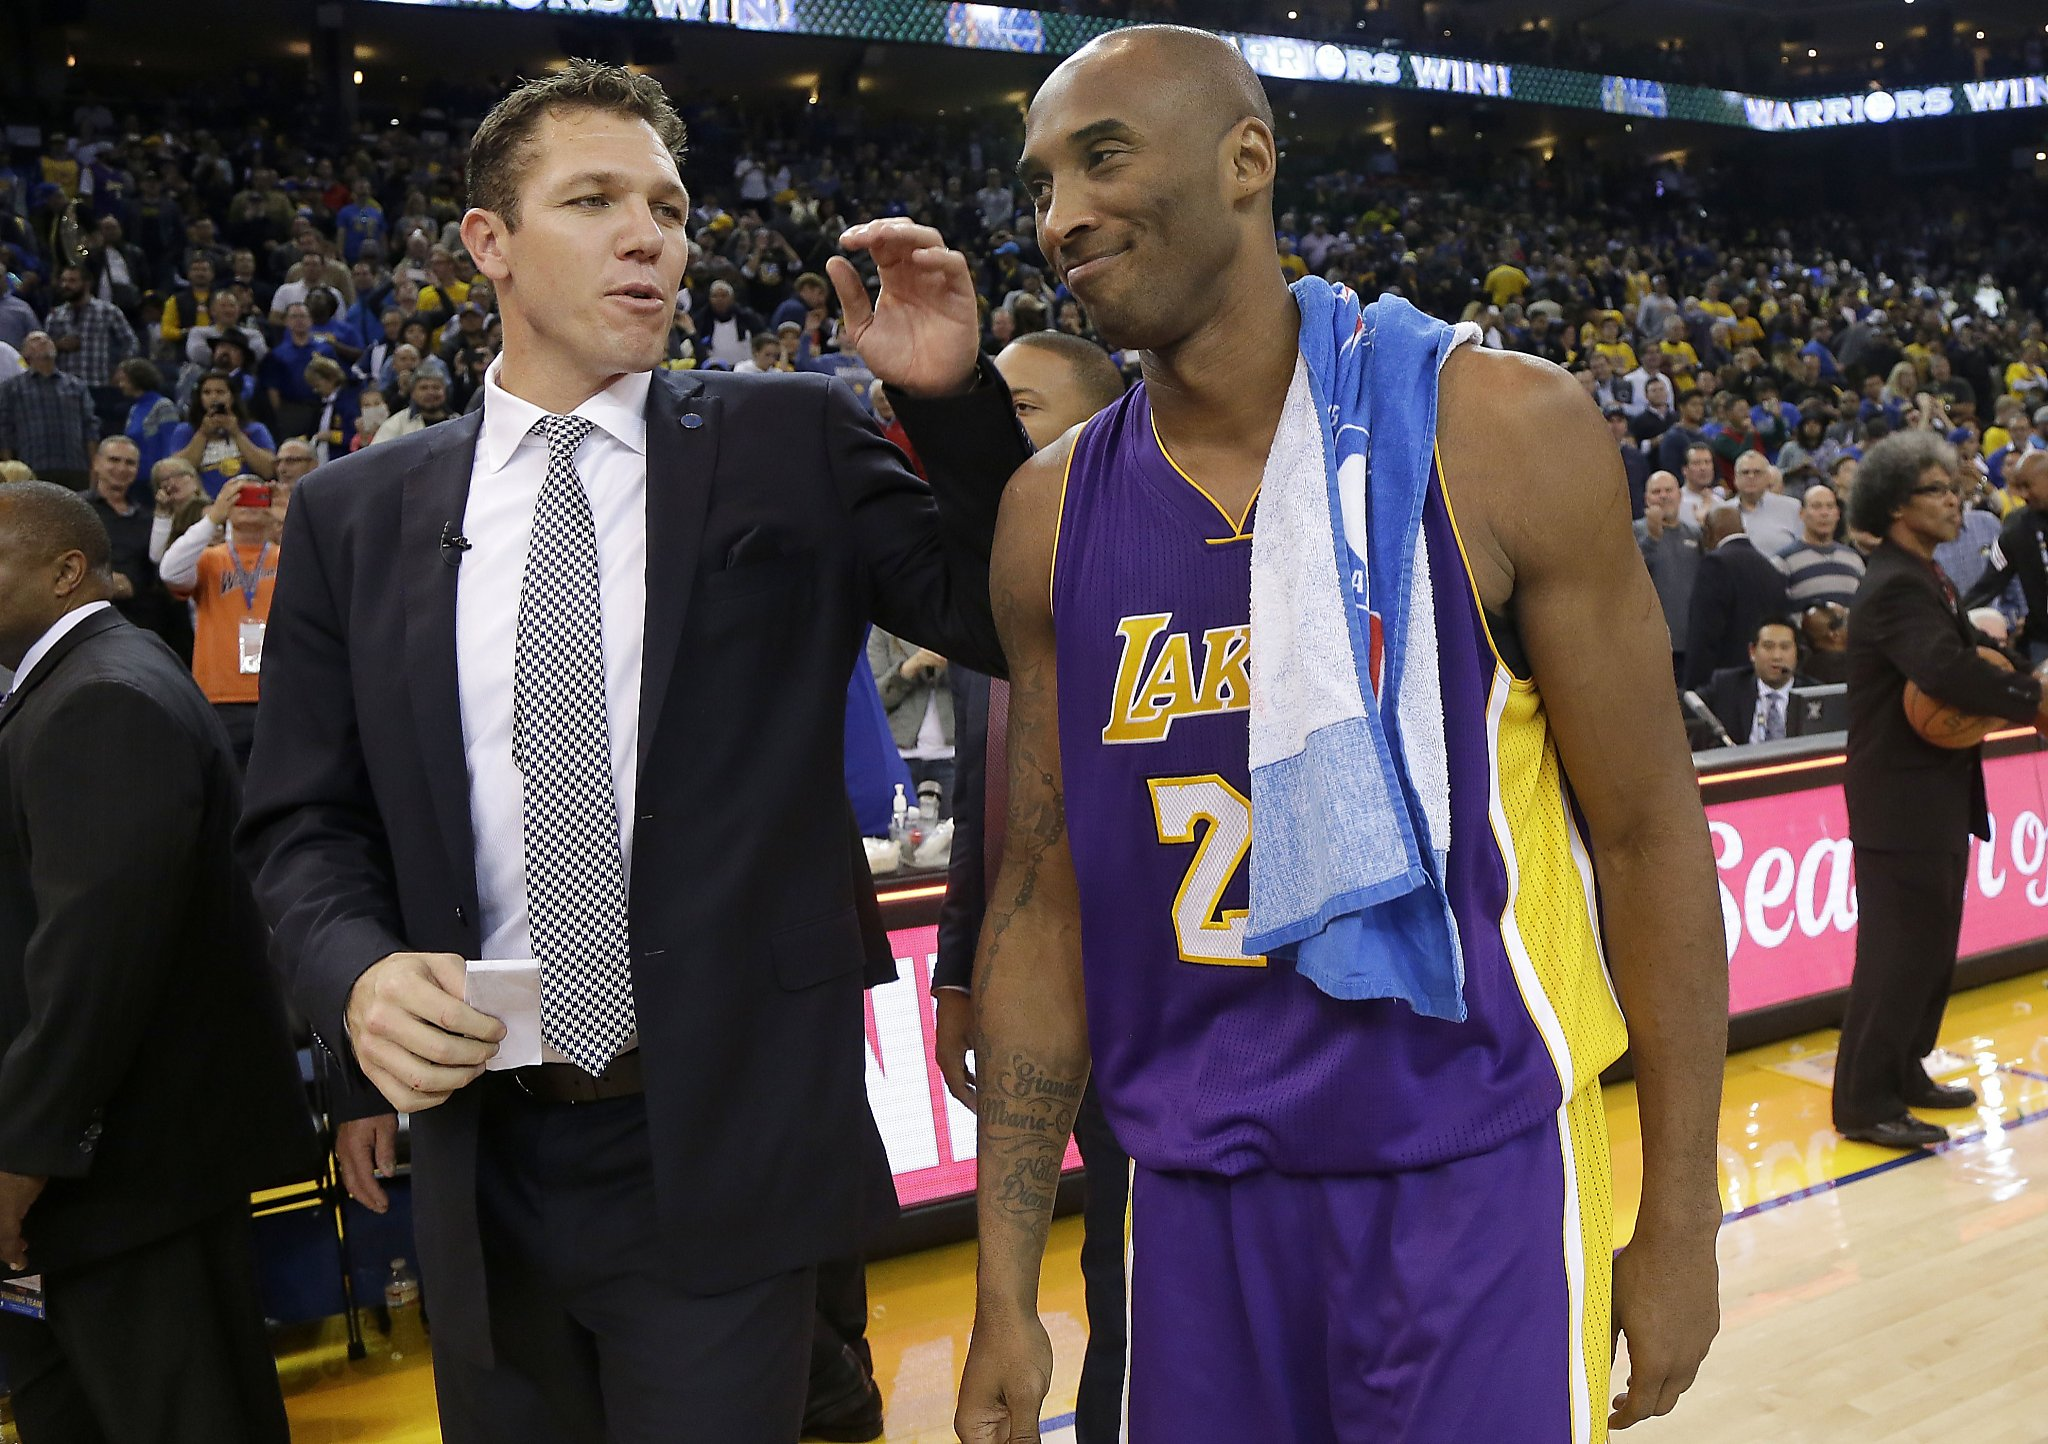 Are Warriors missing Kobe's secret sauce? - SFChronicle com